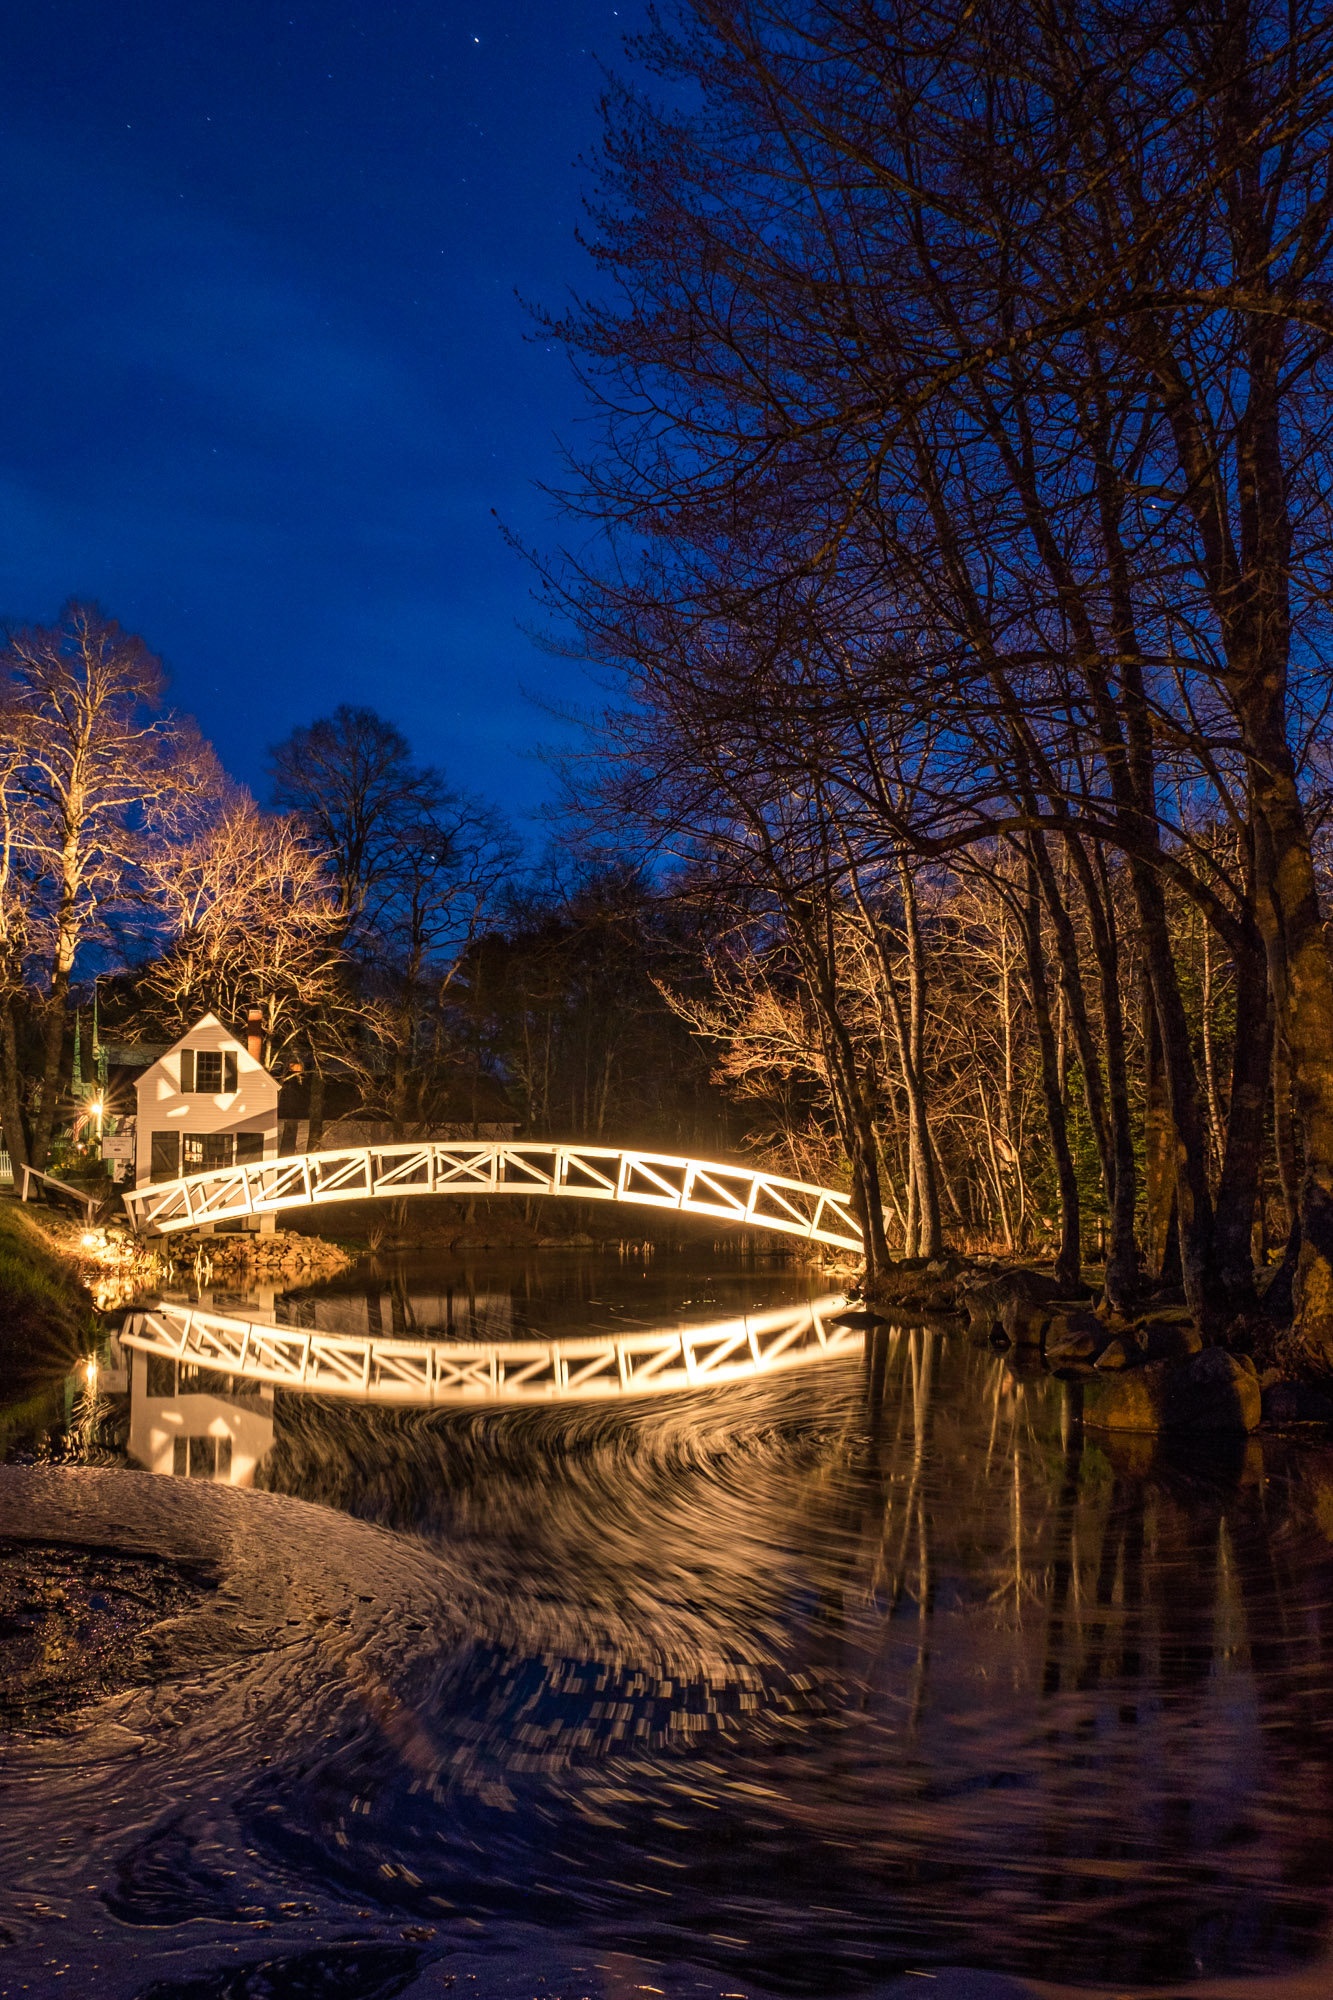 And then I came across the Somesville Bridge, one of the most photographed man-made structures in the area. This was shot at dusk with a tripod.